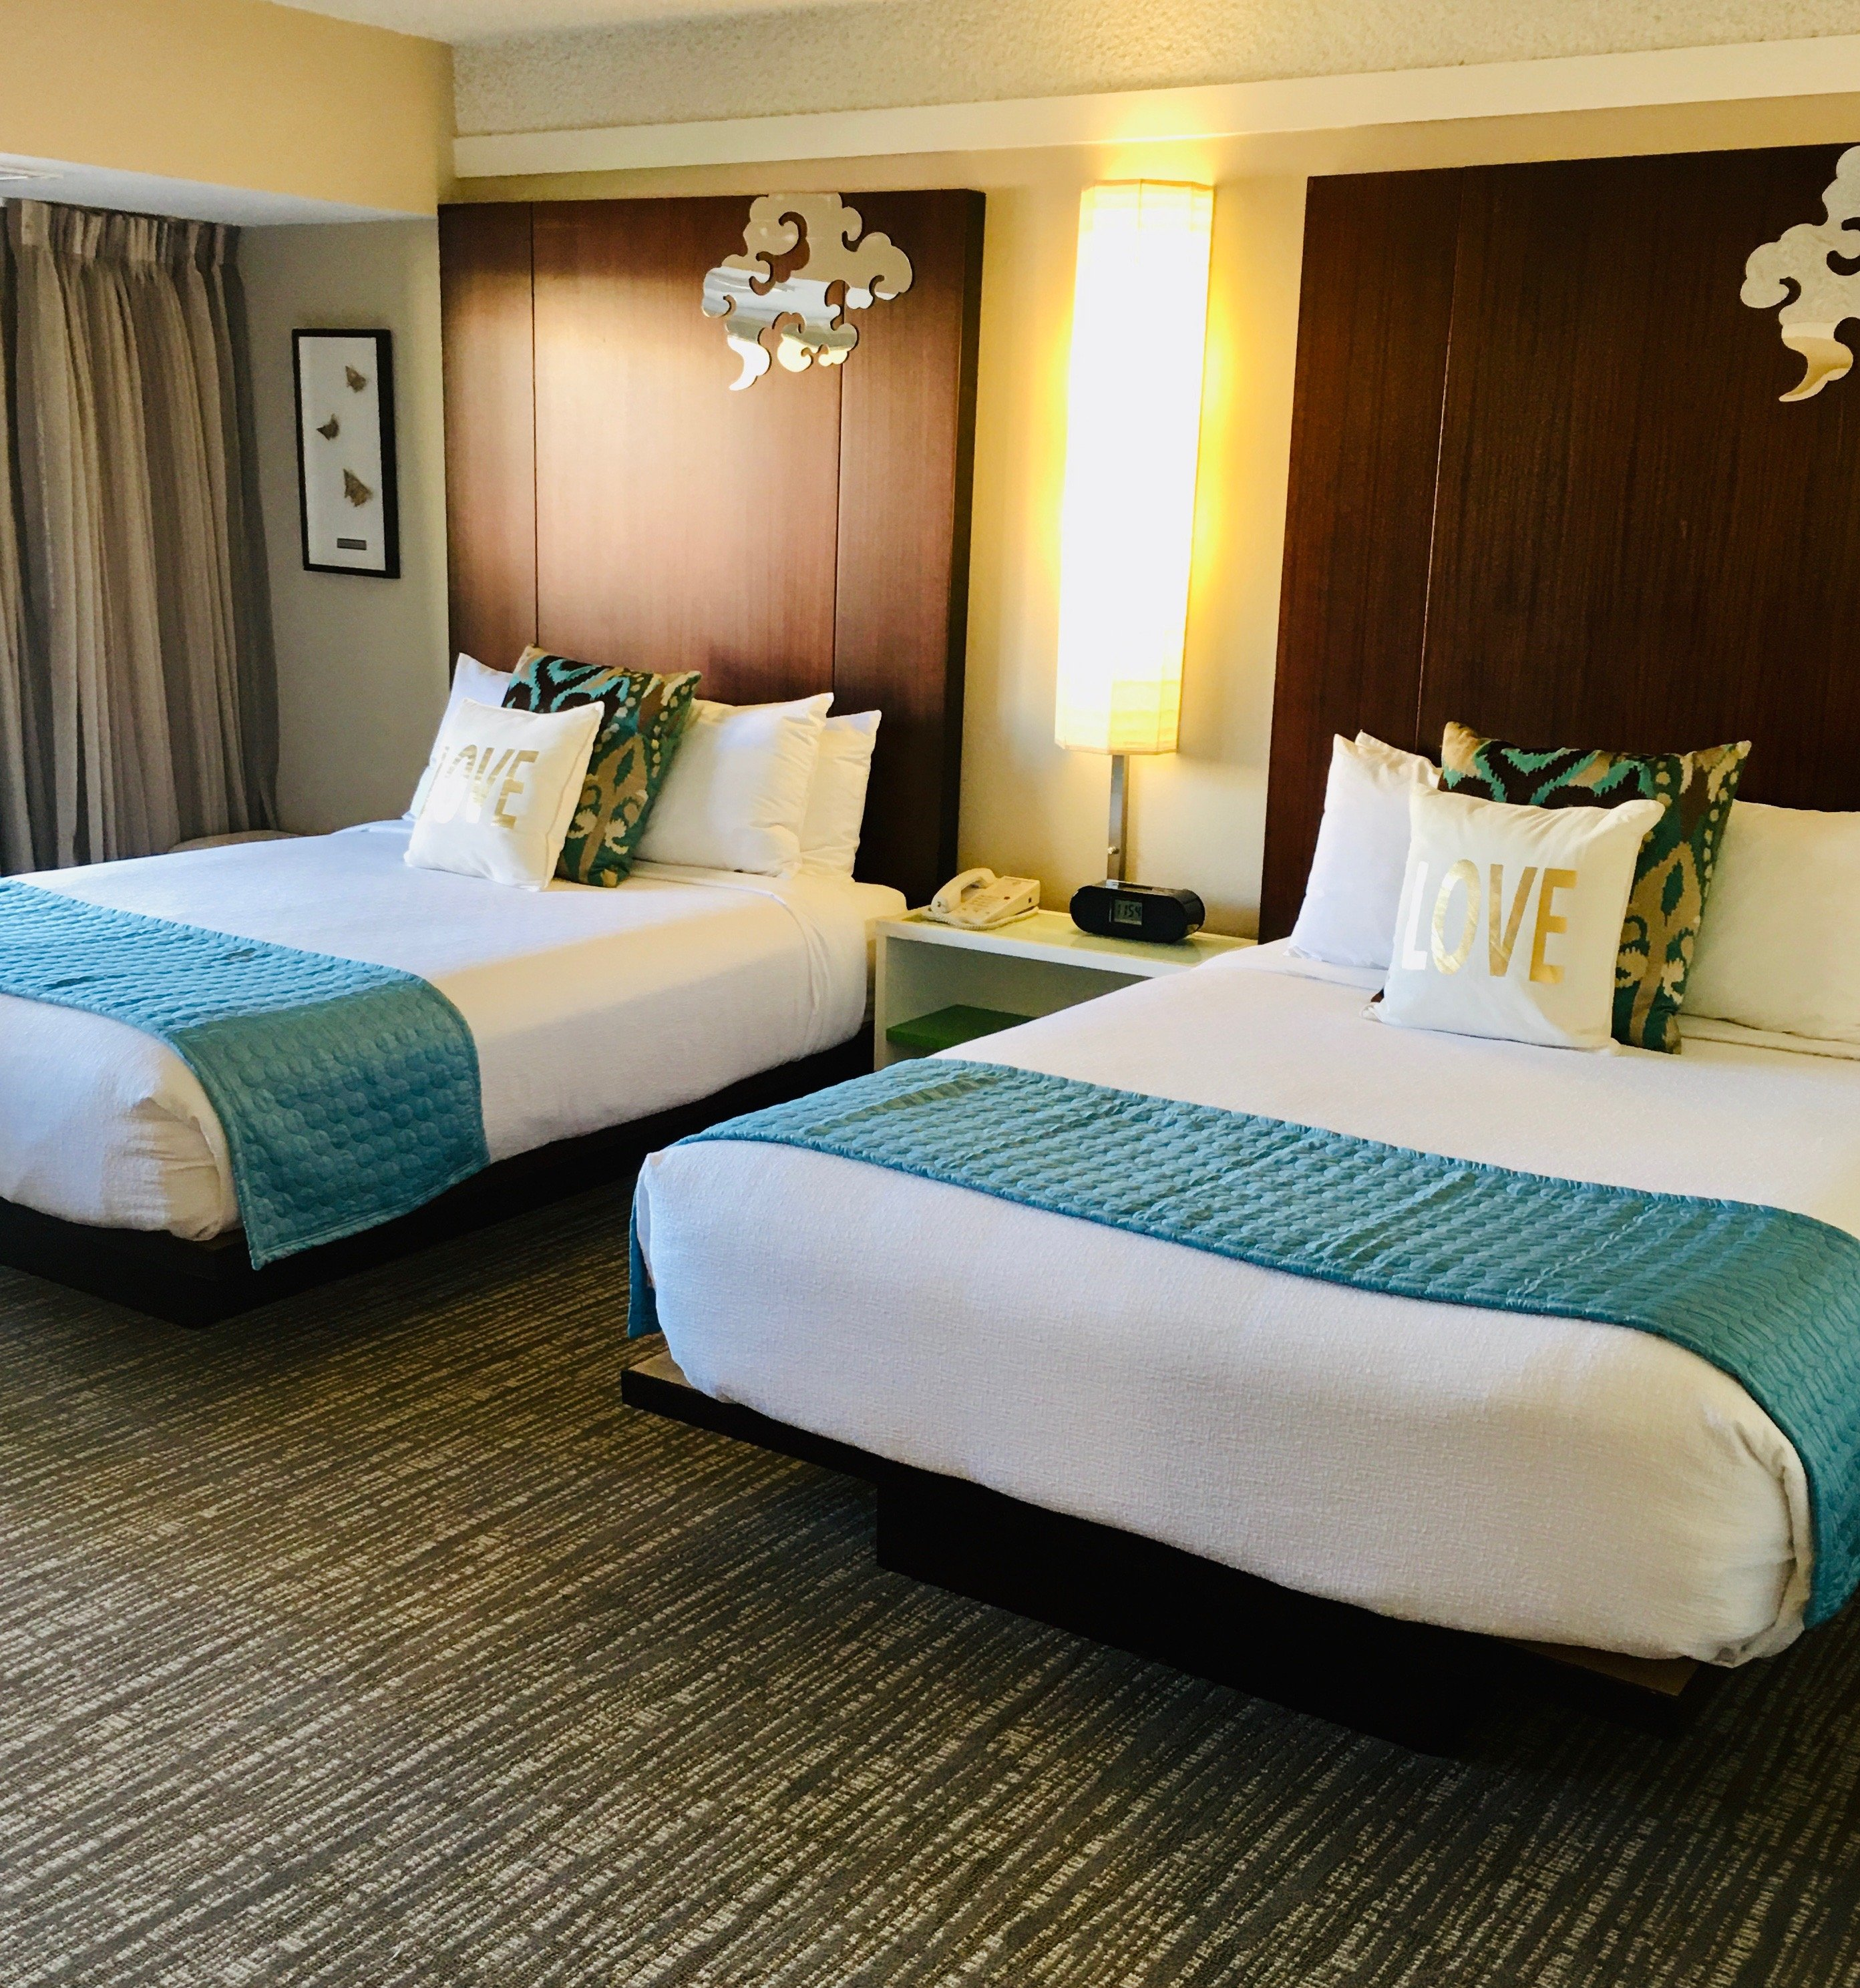 DELUXE DOUBLE BEDS